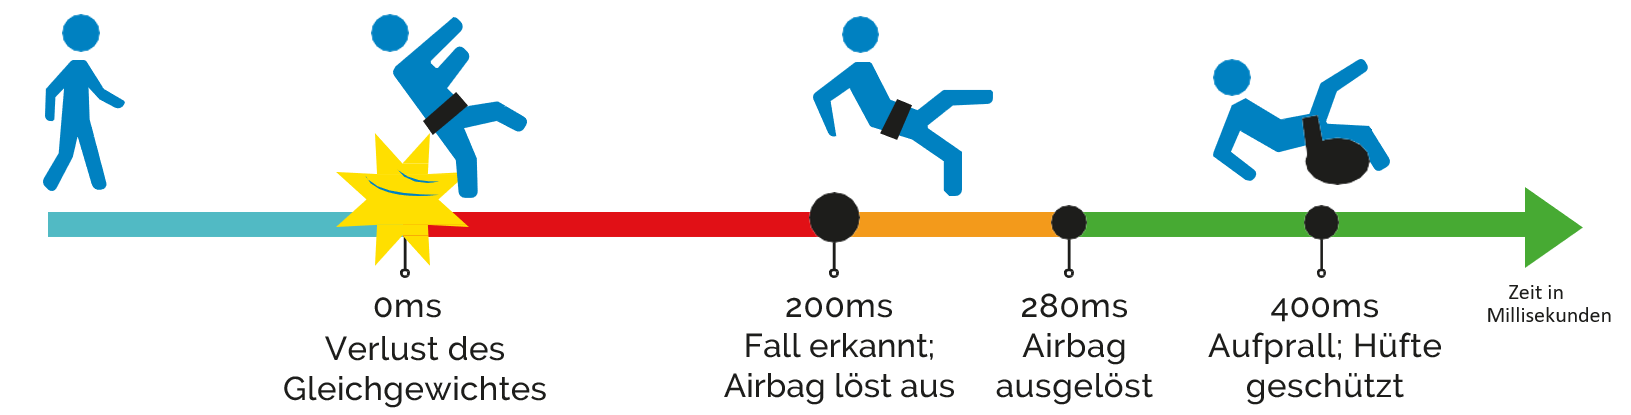 Funktionsweise des Helite Hip'Safe Hüftairbags